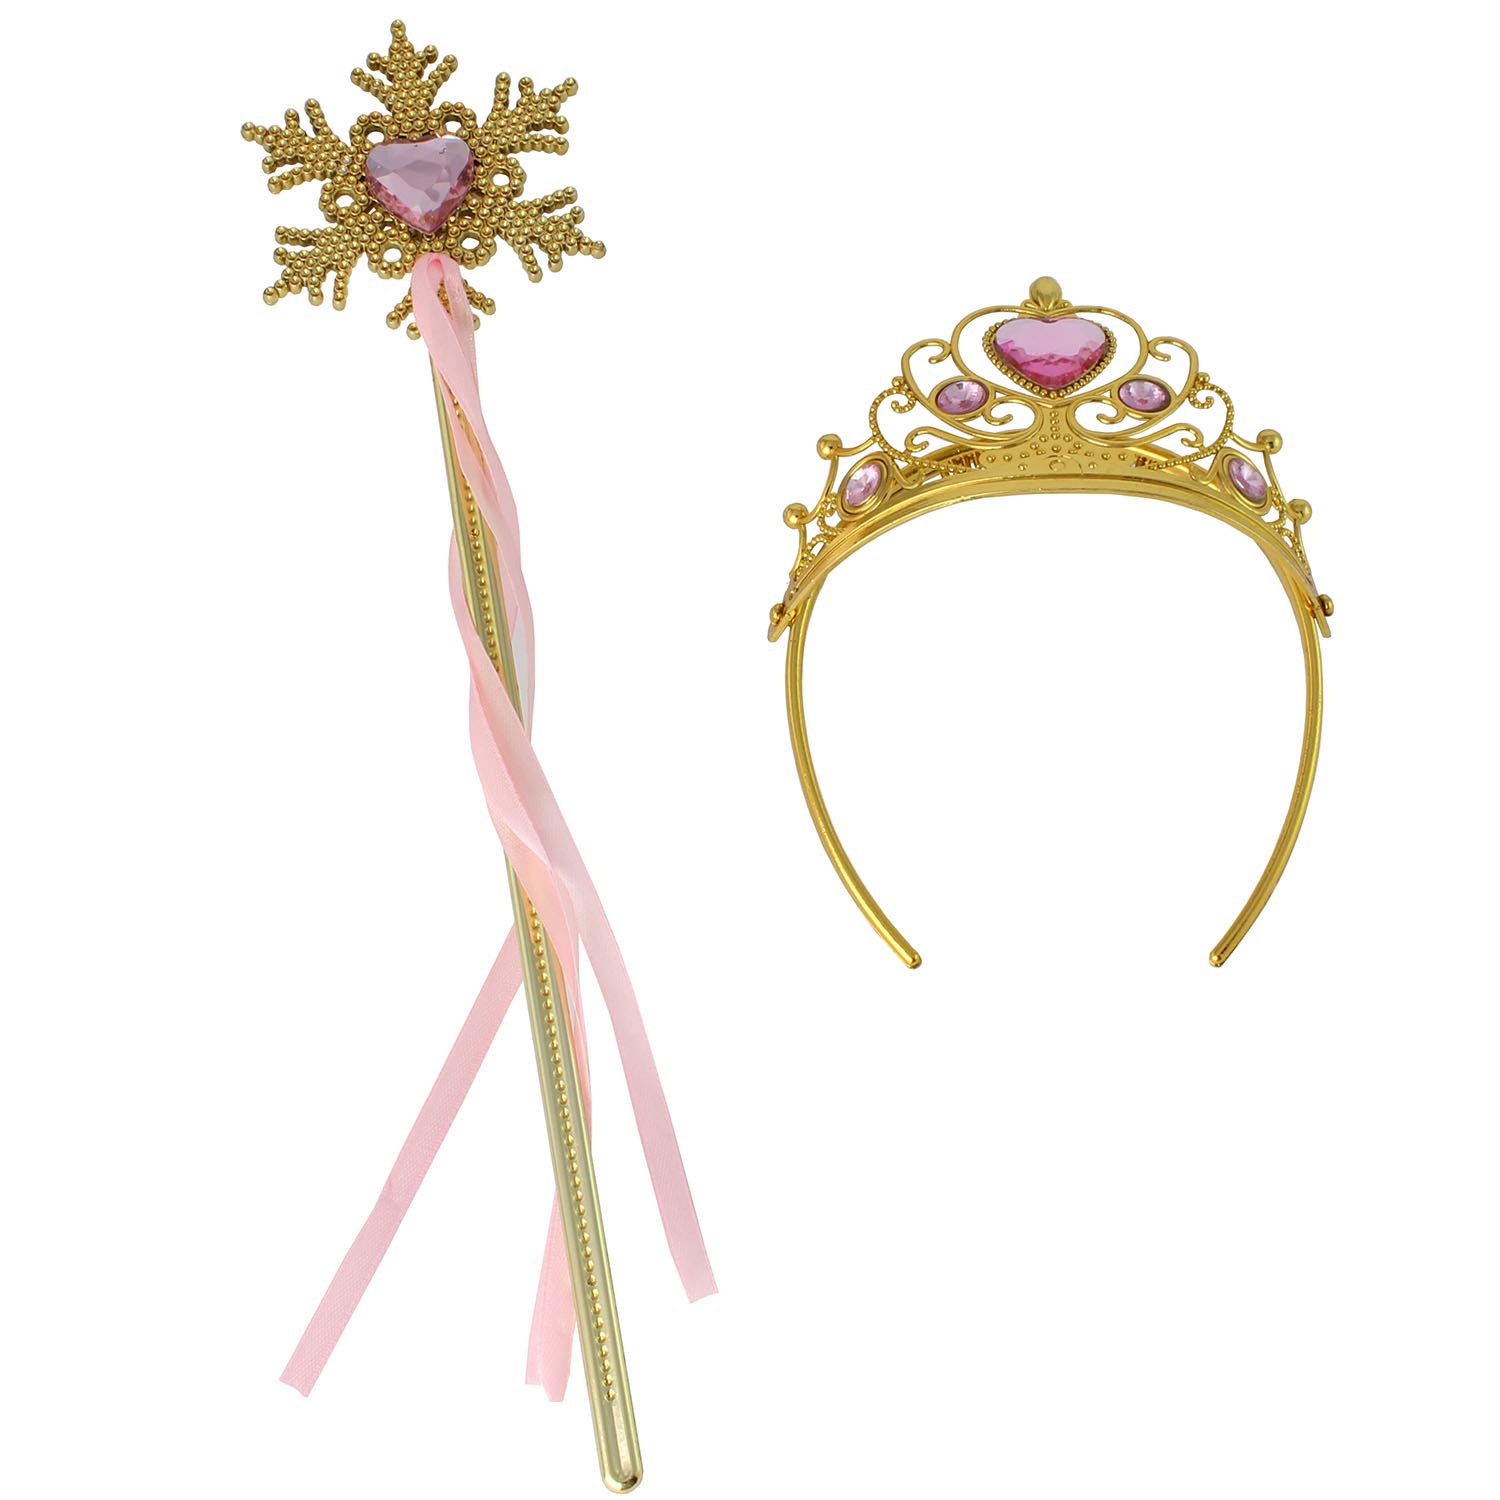 Princess Dress Up Princess Wands Tiaras and Crowns for Little Girls Snowflake Wand Set Pink